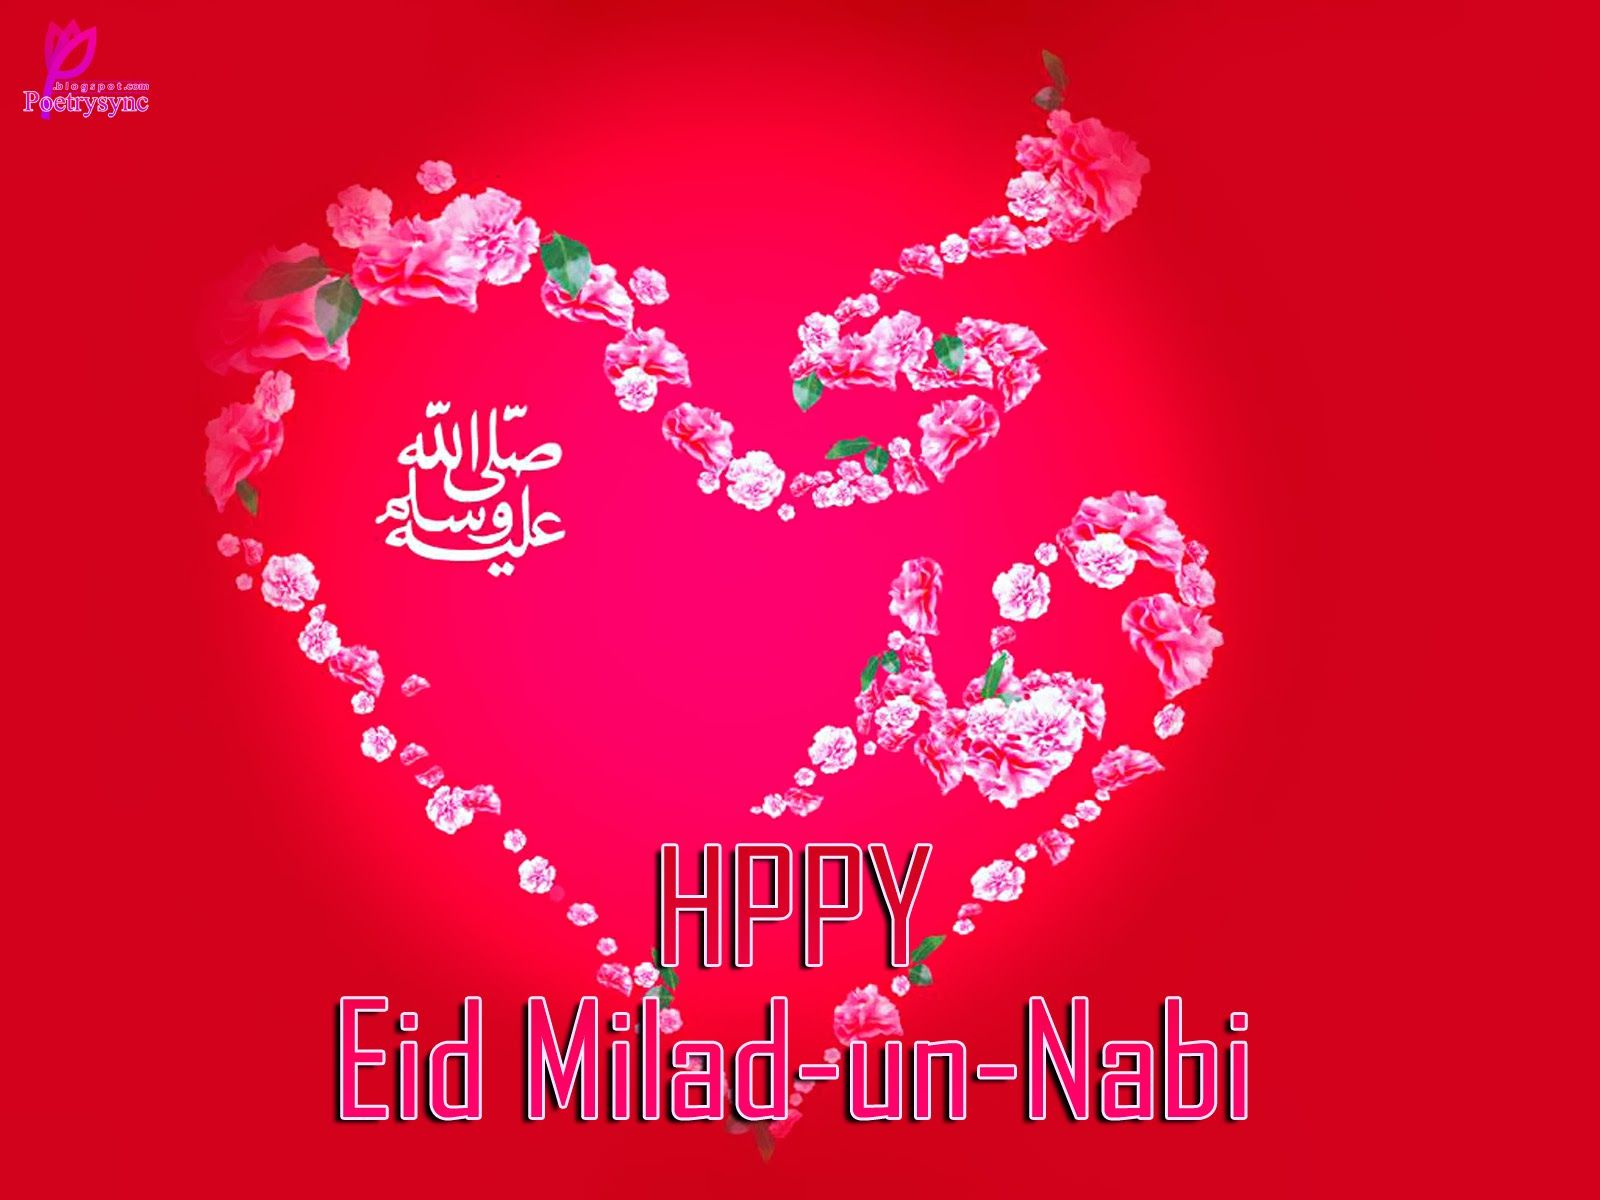 Wallpaper download eid milad un nabi - Happy Eid Milad Un Nabi Wishes Picture Wallpaper